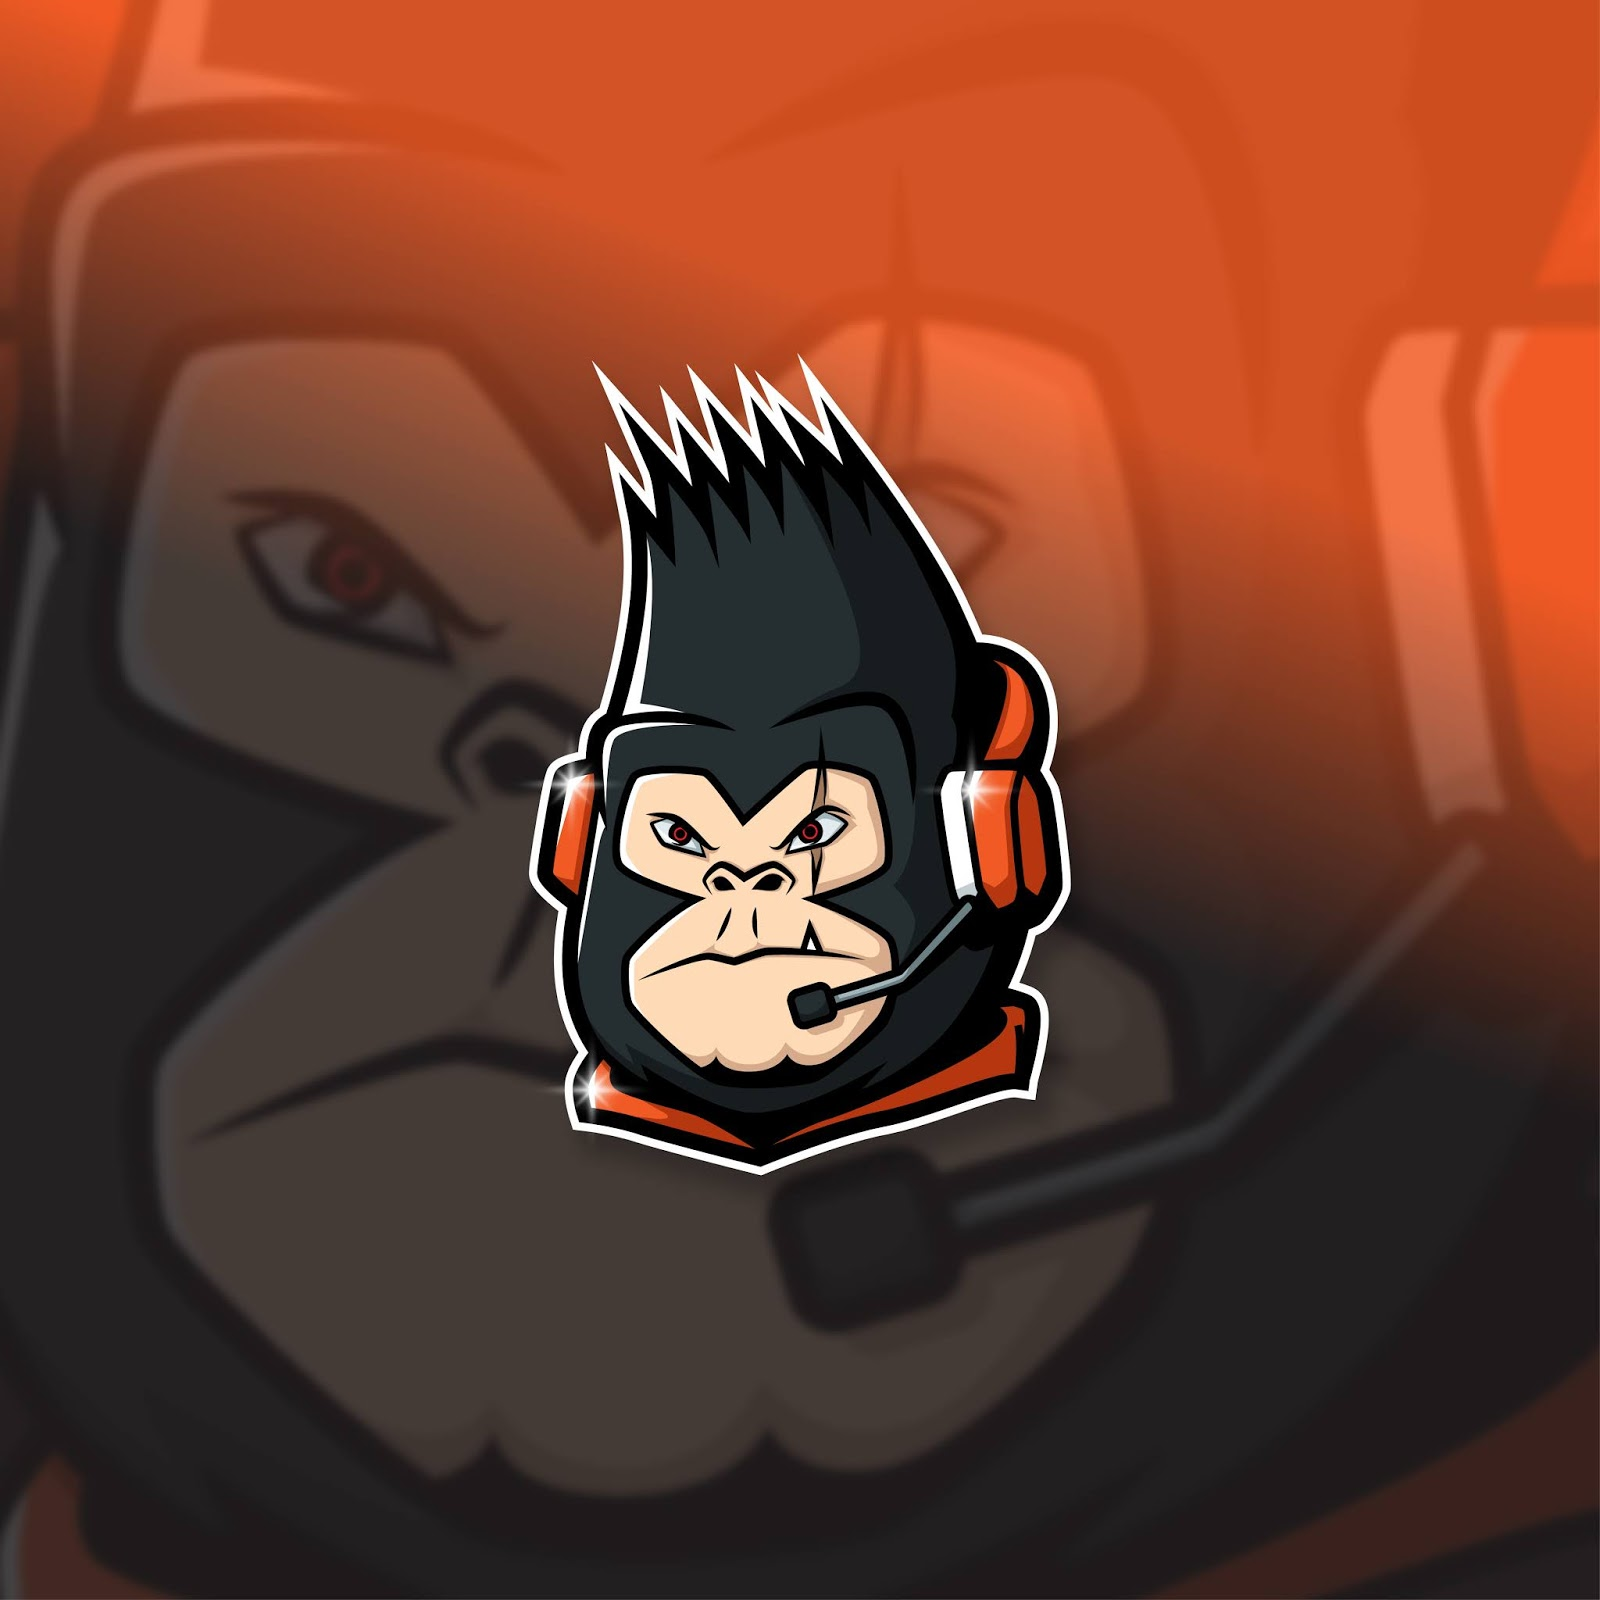 Esports Mascot Logo Team Leader Kong Squad Free Download Vector CDR, AI, EPS and PNG Formats